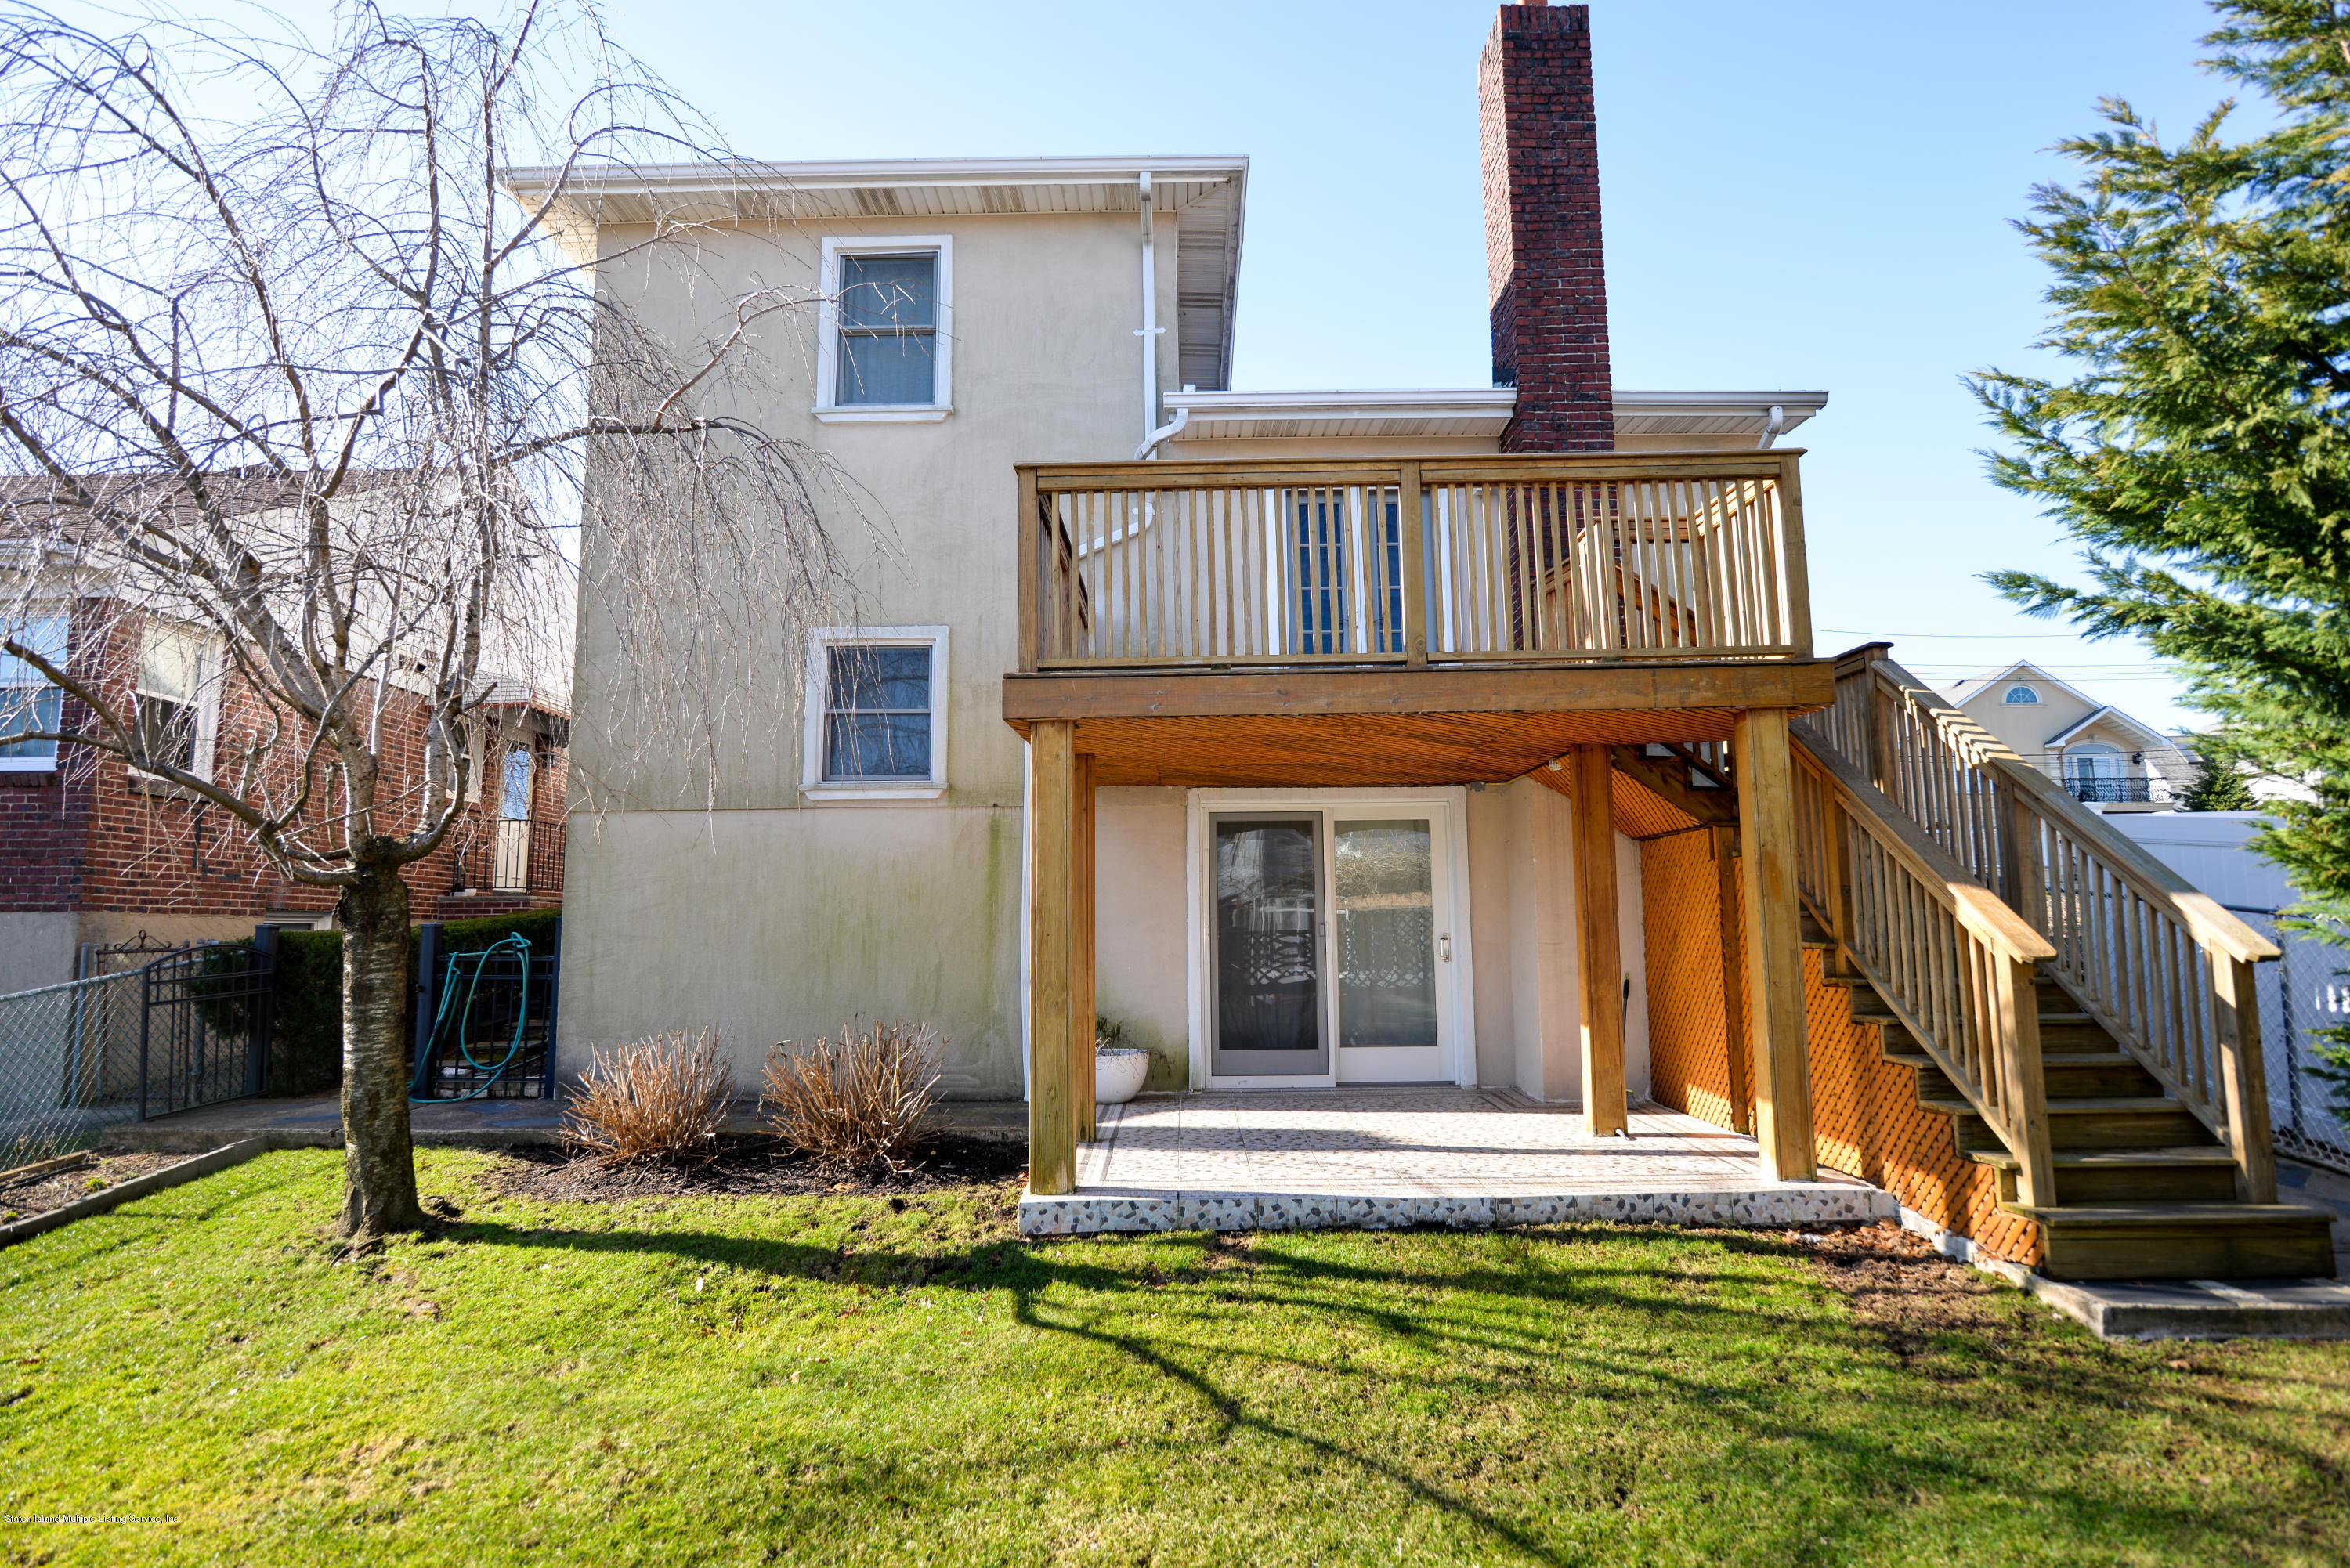 Single Family - Detached 53 Pouch Terrace   Staten Island, NY 10305, MLS-1121390-3